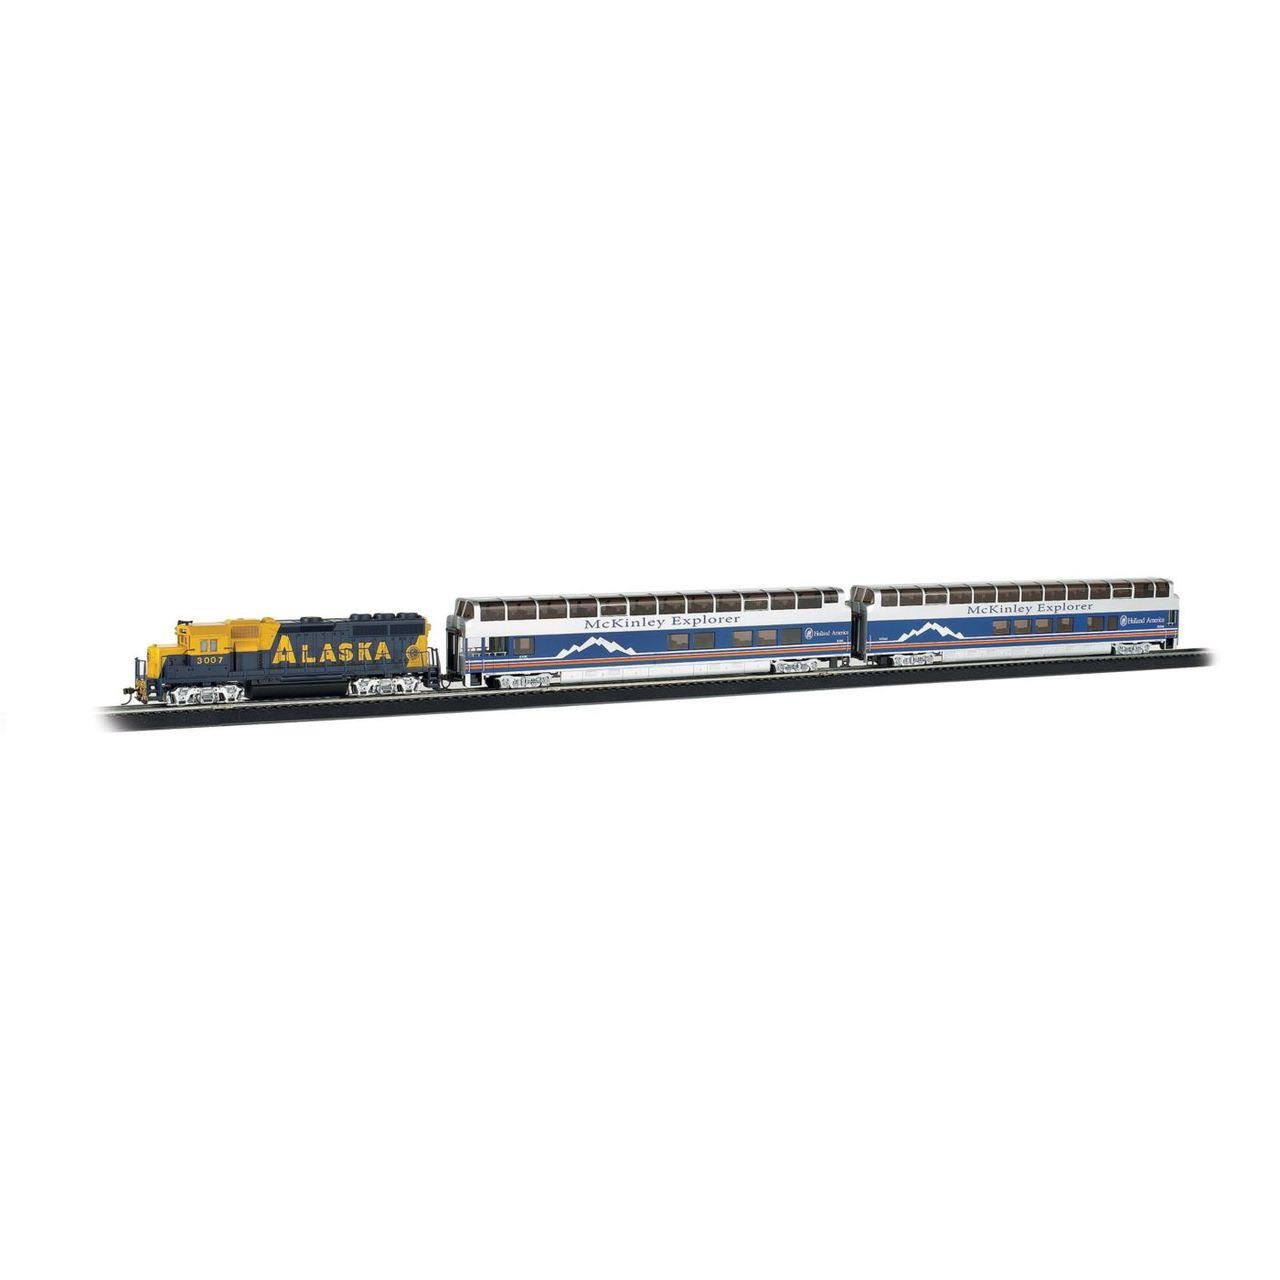 Bachmann Trains Mckinley Explorer Ho Scale Ready-to-run Electric Train Set